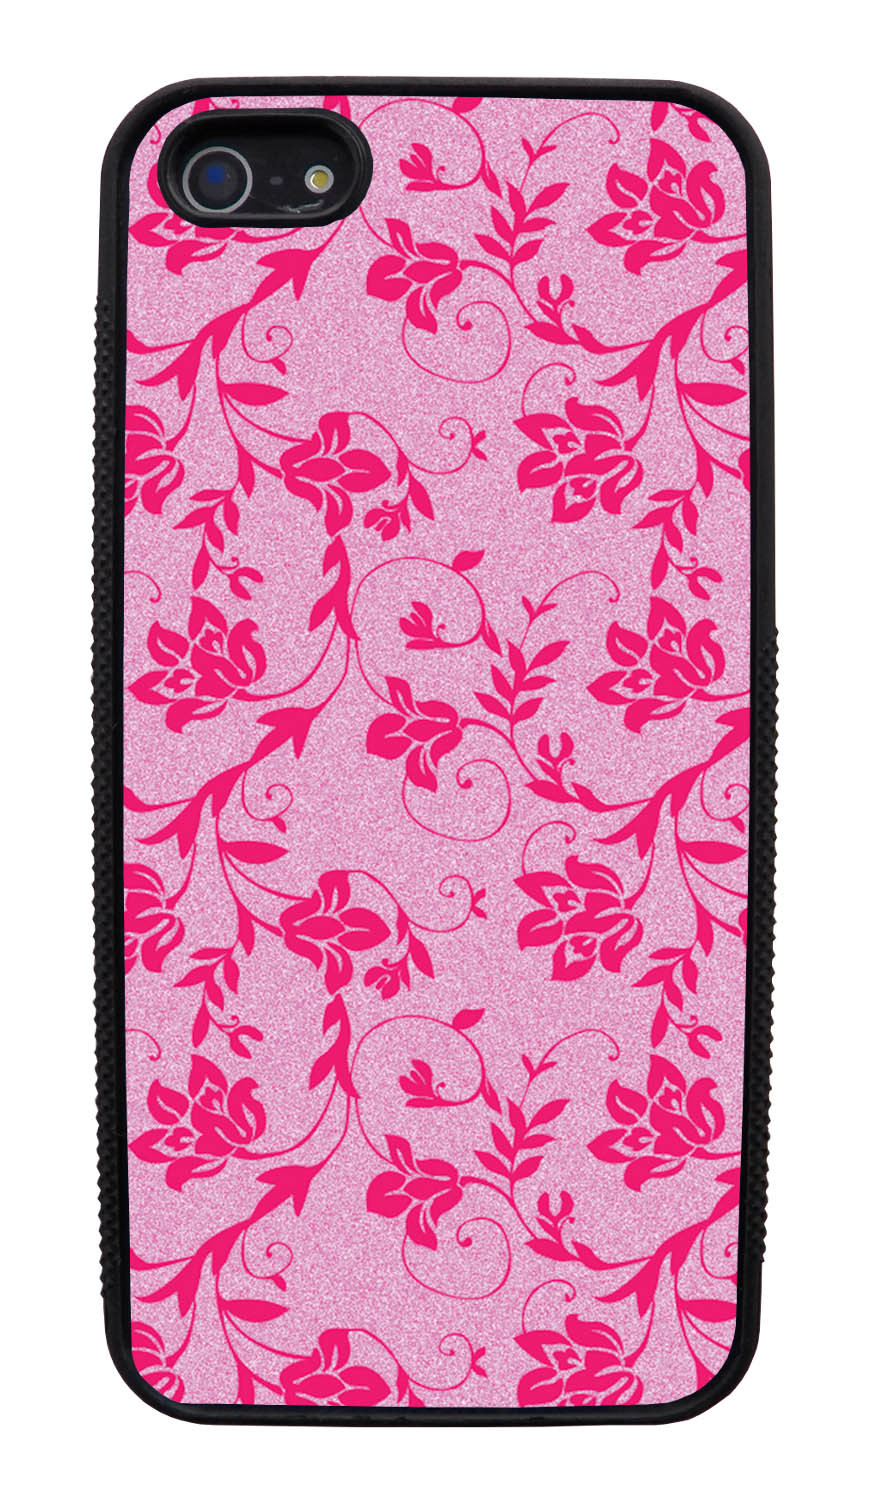 Apple iPhone 5 / 5S Flower Case - Hot Pink on Textured Pink - Stencil Cutout - Black Slim Rubber Case